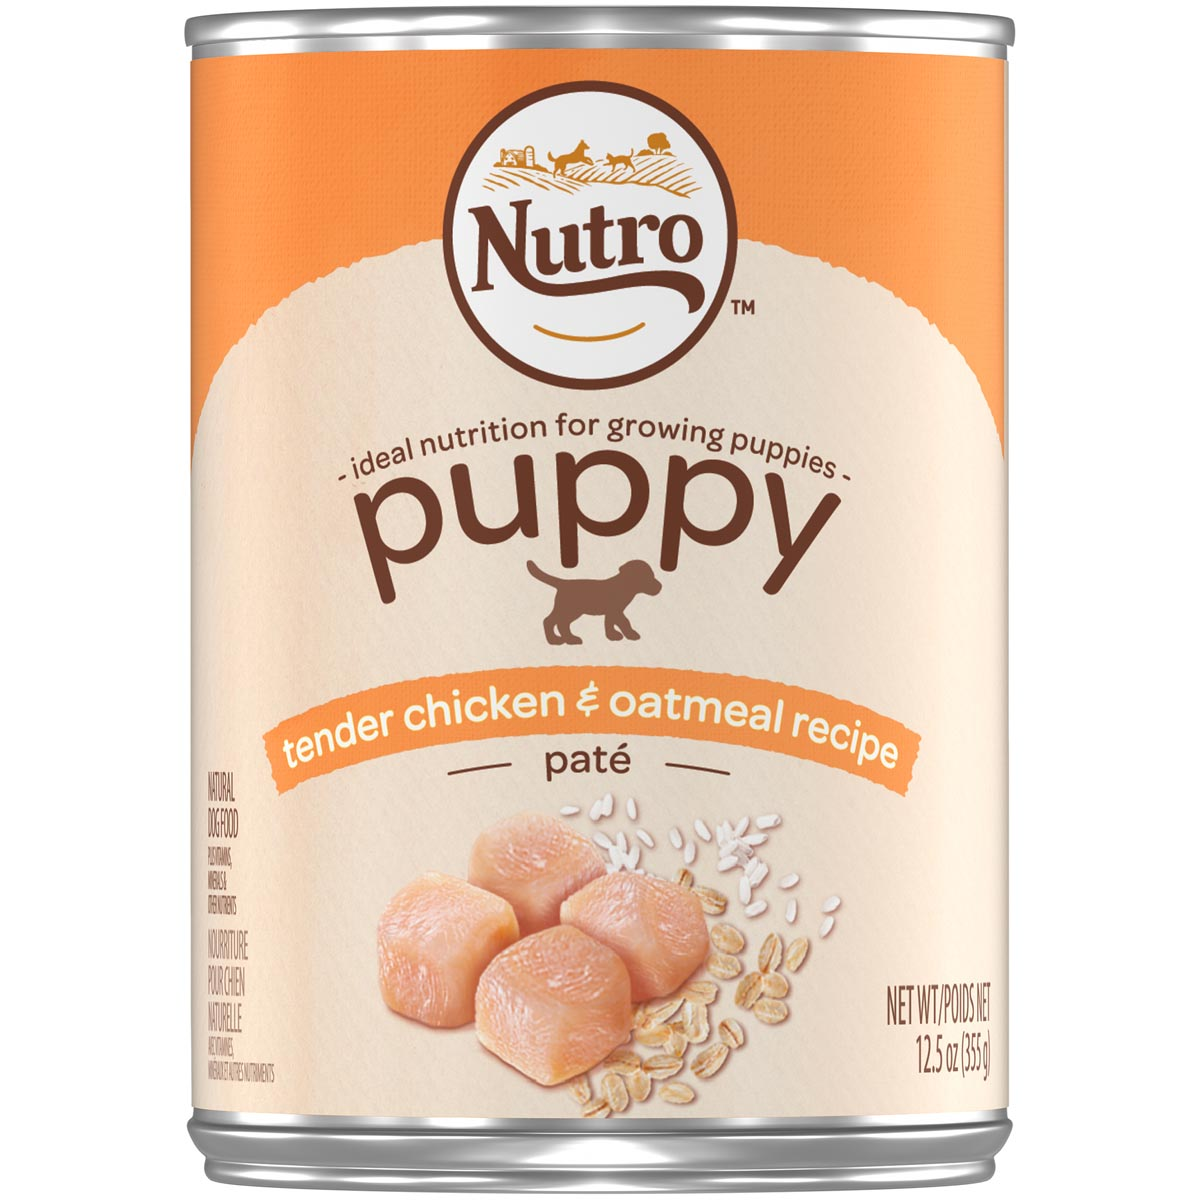 Nutro Puppy Tender Chicken & Oatmeal Recipe Pate Natural Dog Food 12.5 oz. Can